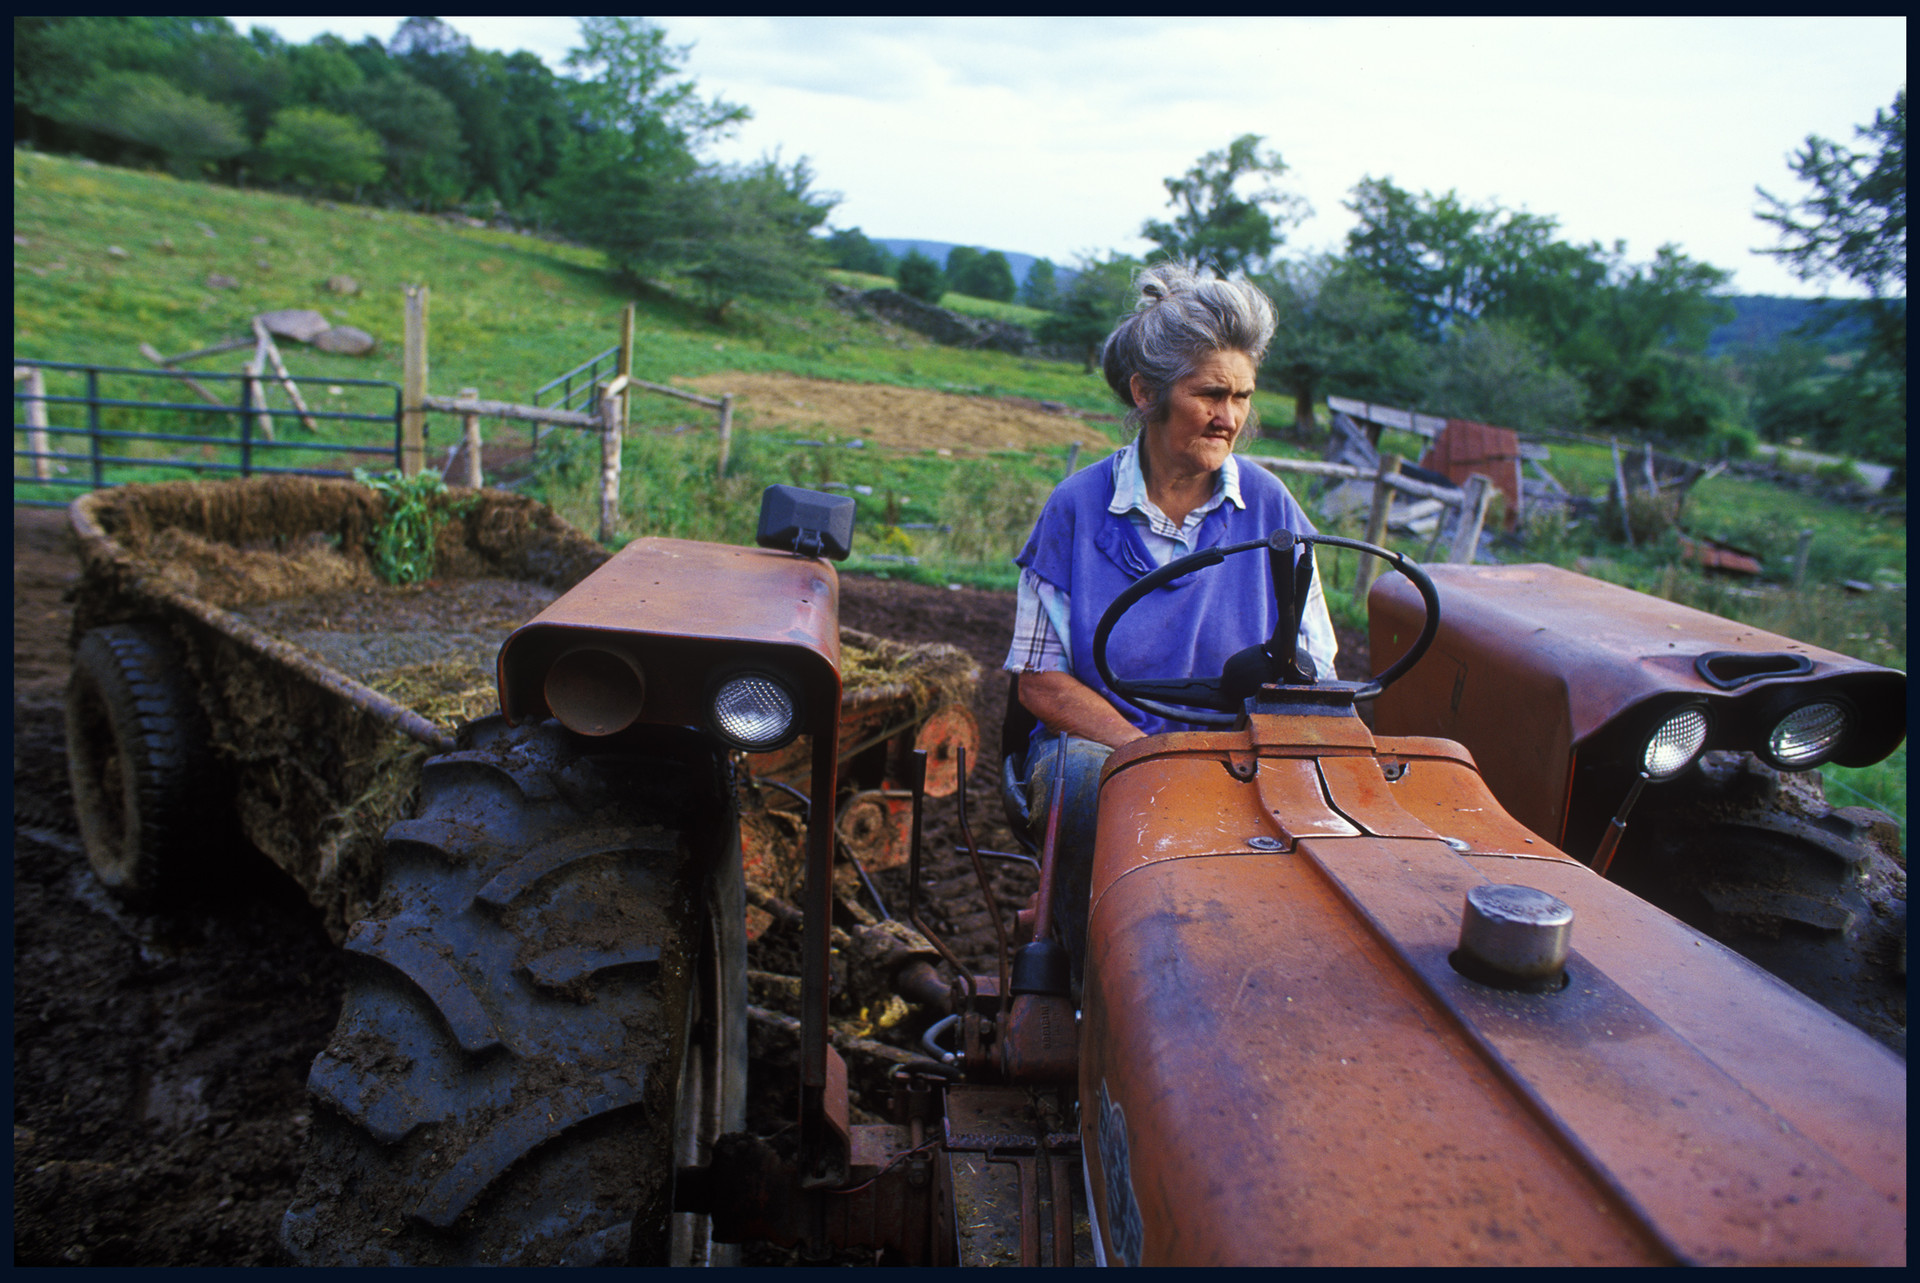 Donna Champlin on her tractor. Delaware County, NY, 1996